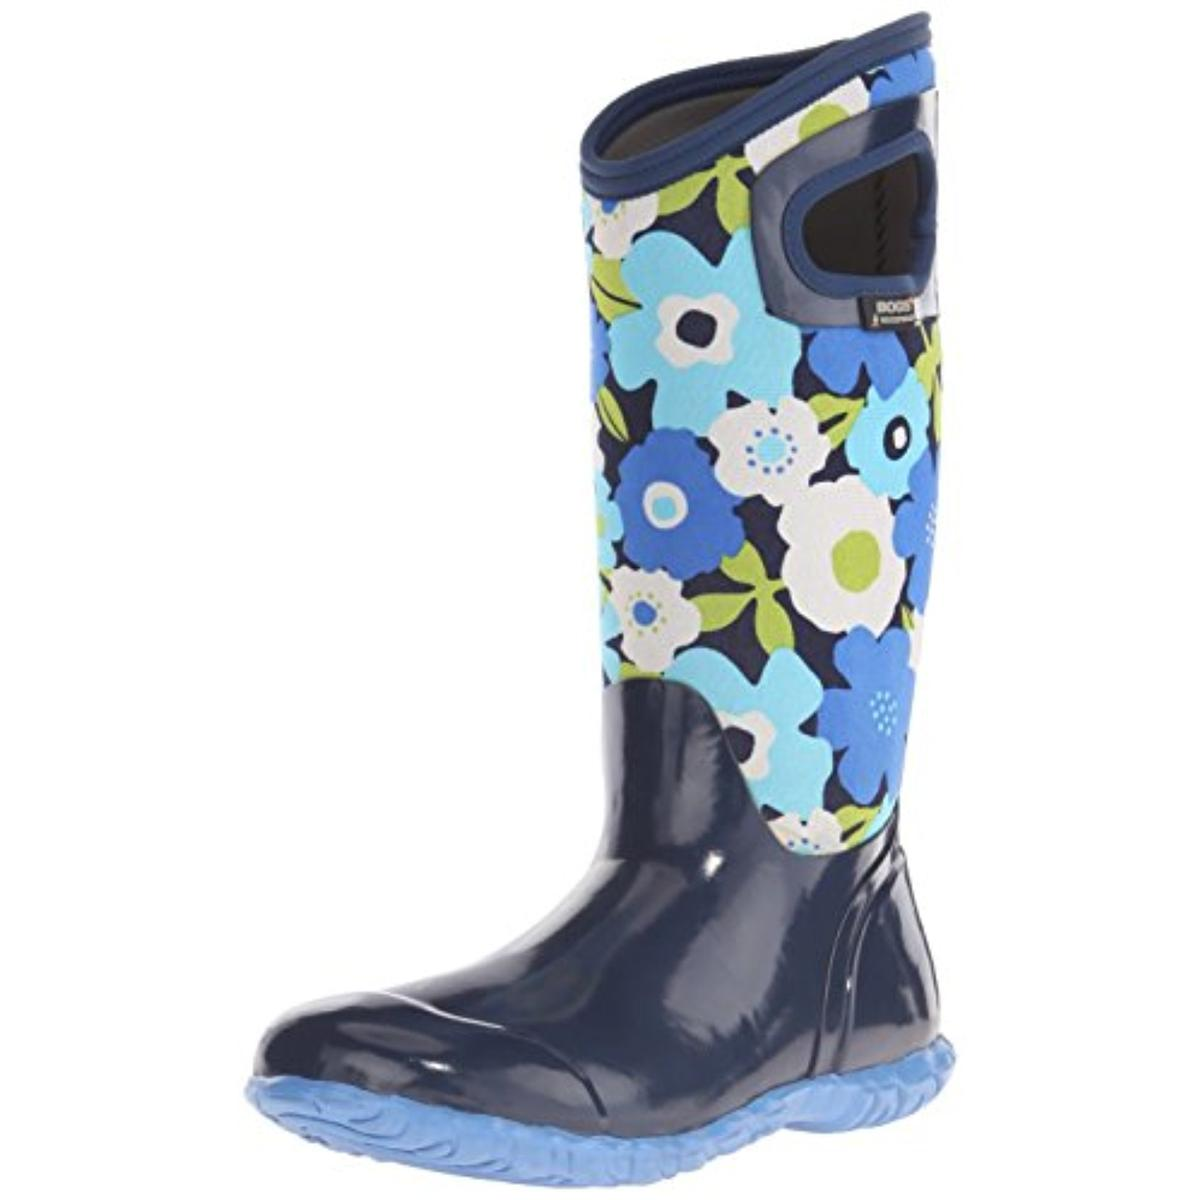 Awesome Bogsvioletbogswomensclassichightuscanyrainbootproduct1